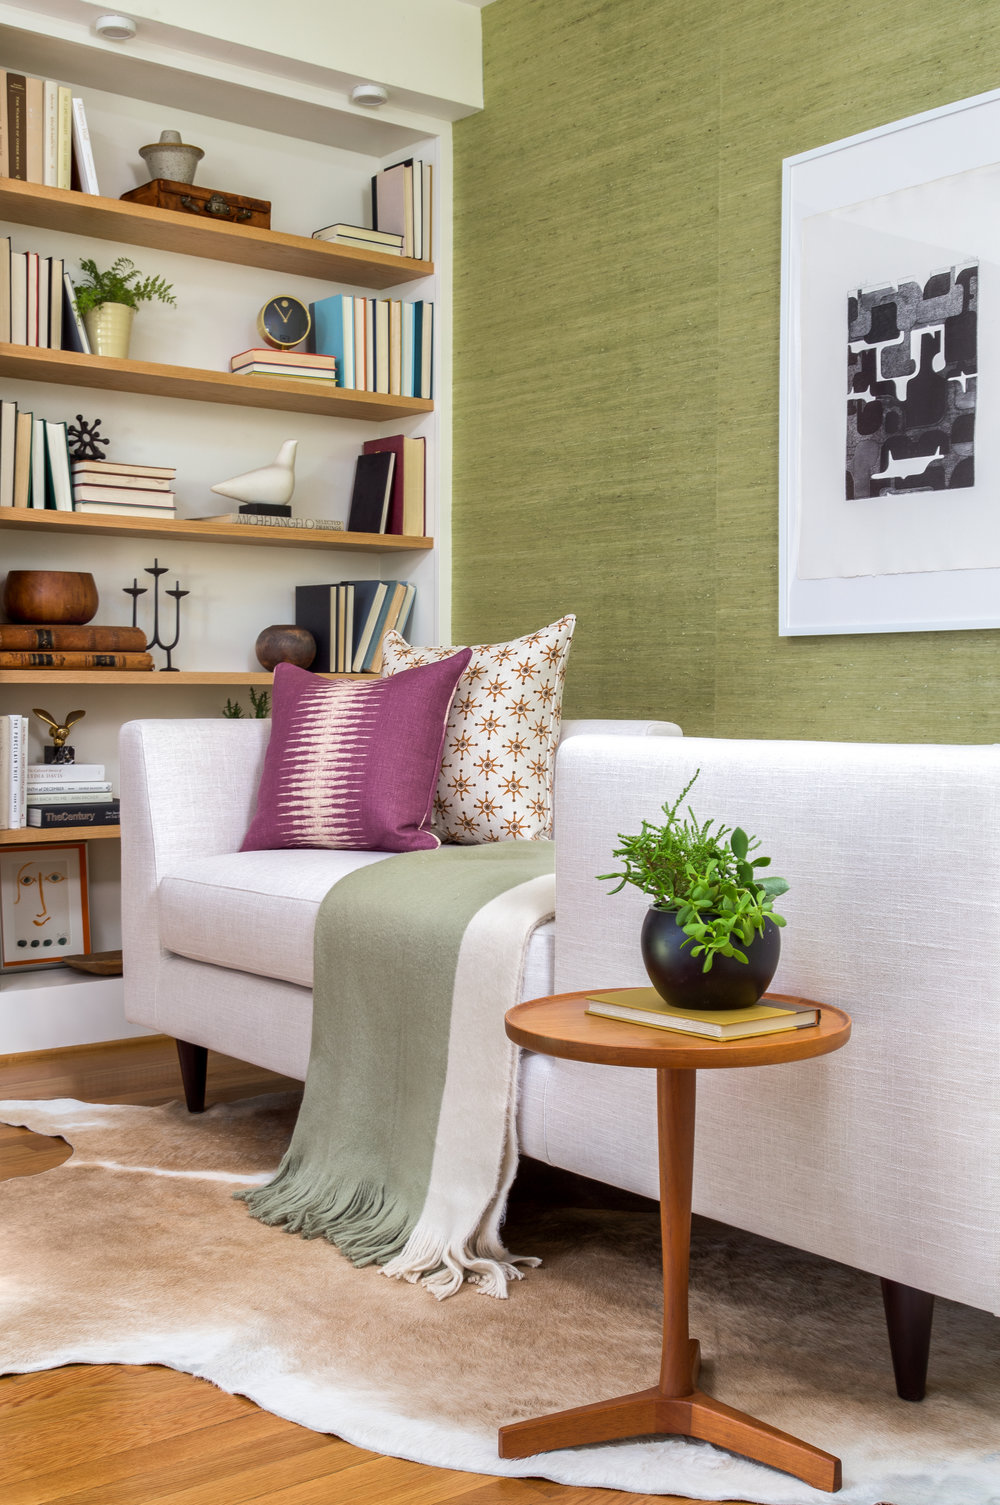 The neutral, mid-century style of the design was complemented by curated items original to that era, provided by  Caribe Casual .  Photo by  Jenn Verrier .